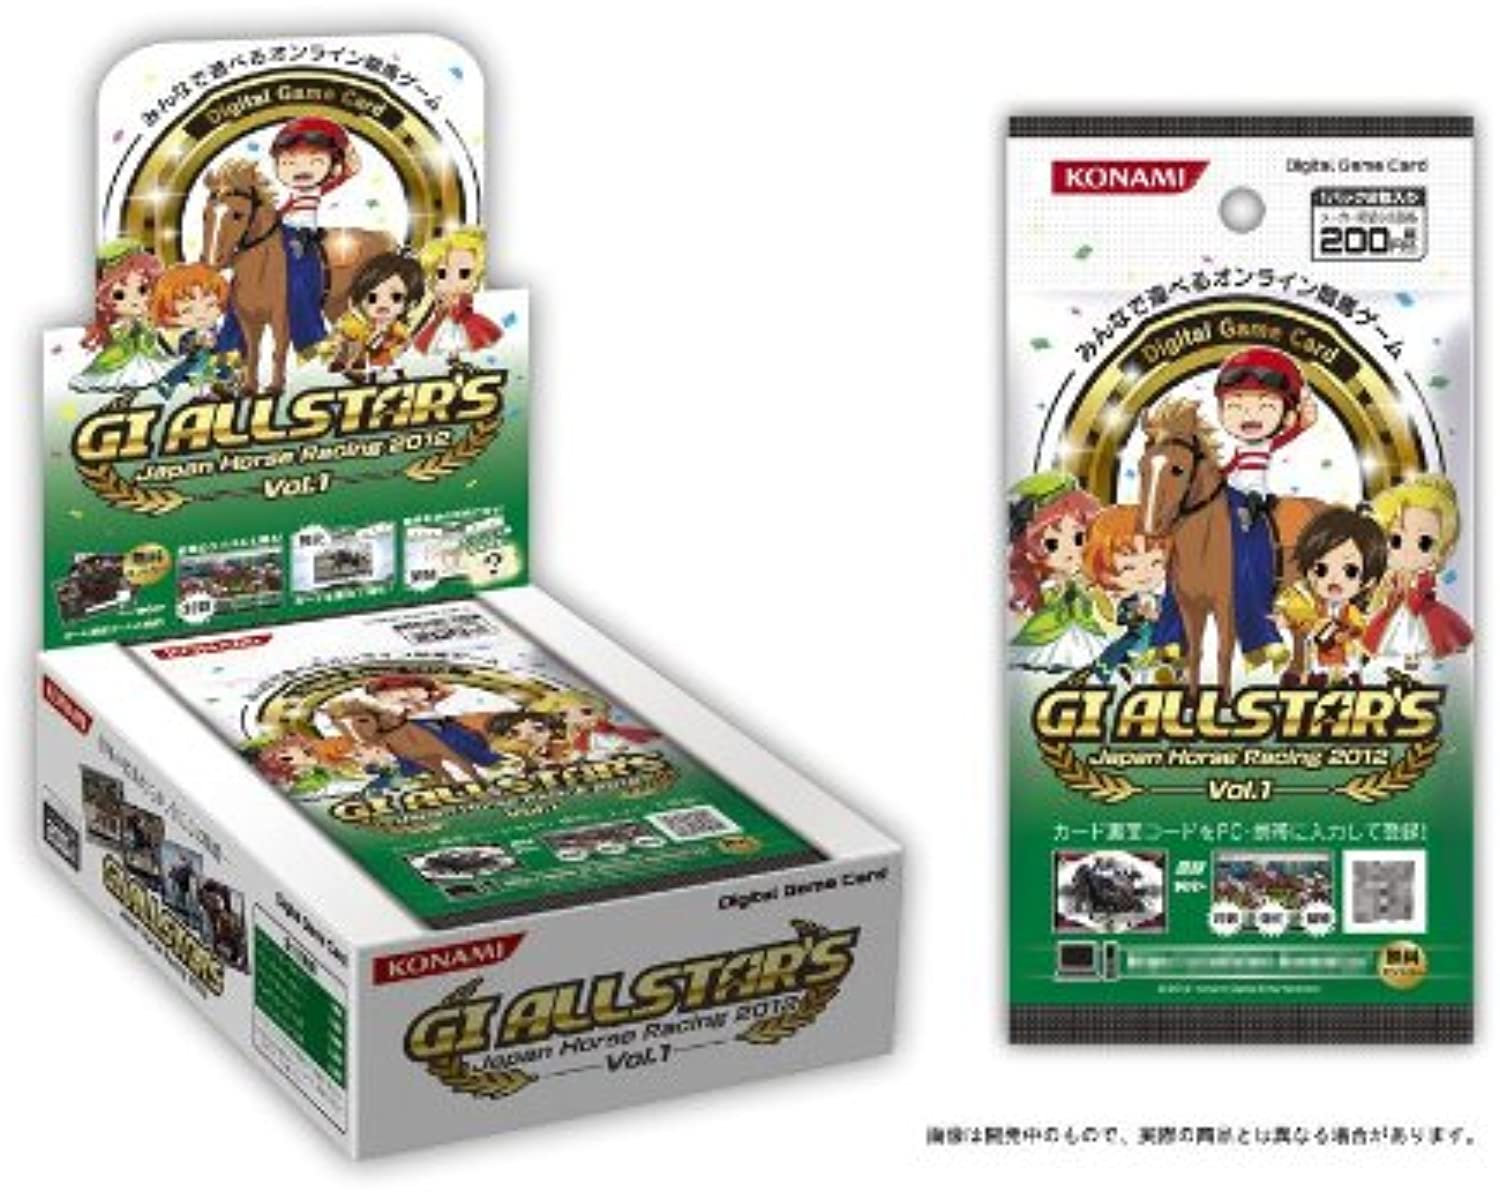 Digital Game Card GI ALLSTAR'S Japan Horse Racing 2012 Vol.1 (japan import) B00799PQAE Der neueste Stil | Speichern